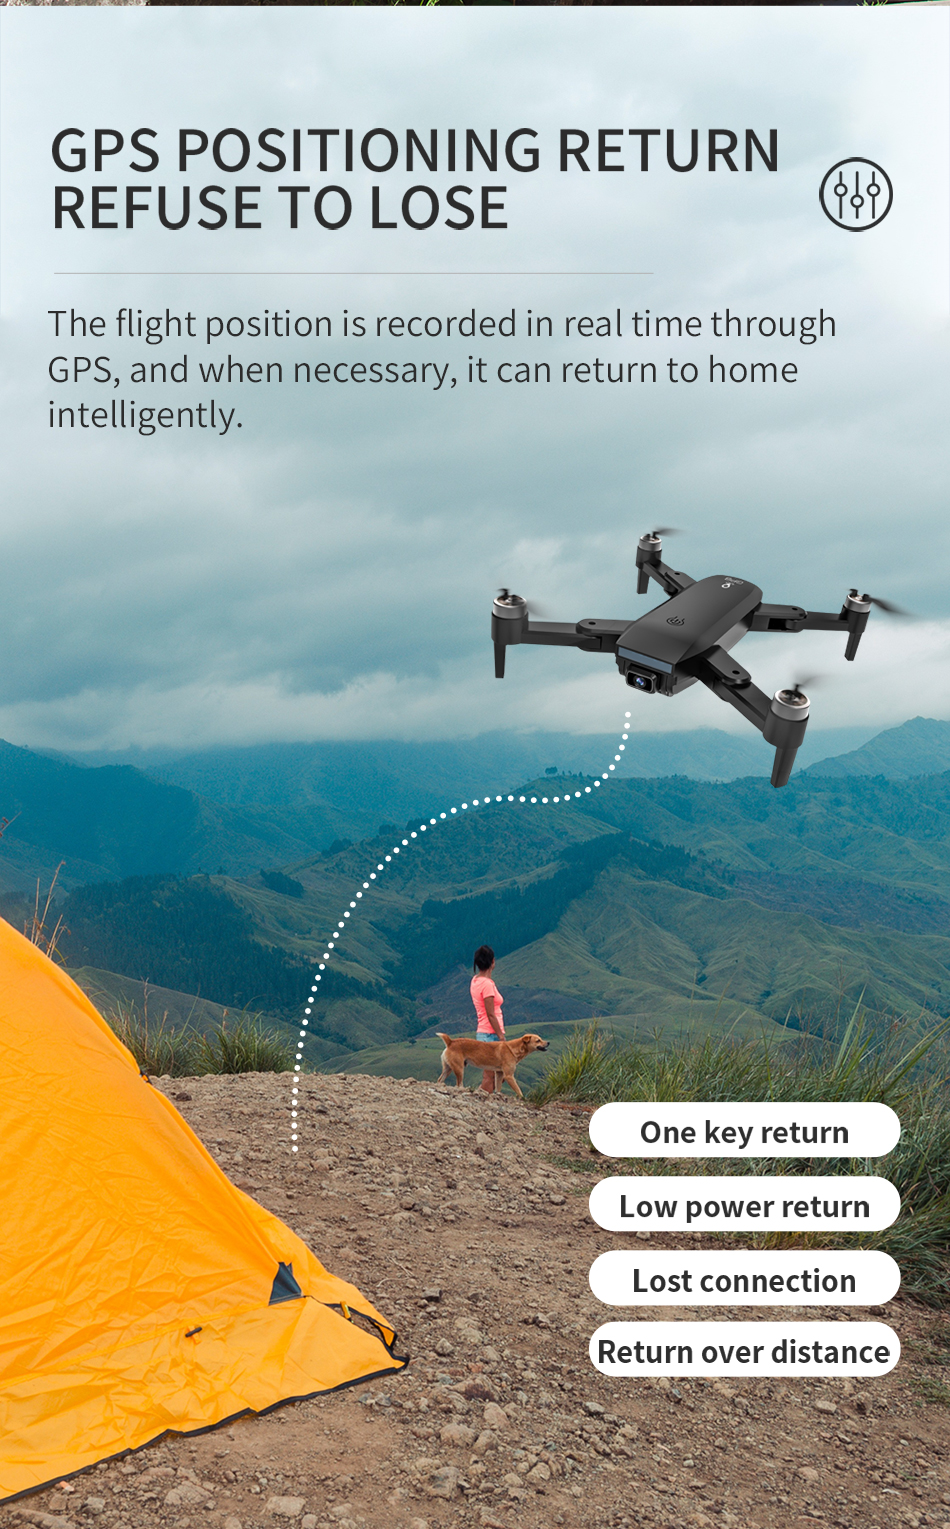 H6dc630bdbc3440e893088c4f952cc29bk - ZLL SG700 MAX Drone GPS 5G WiFi Dual Camera Brushless Motor Flight RC Distance 800m SG700 Pro Foldable Professional Quadcopter